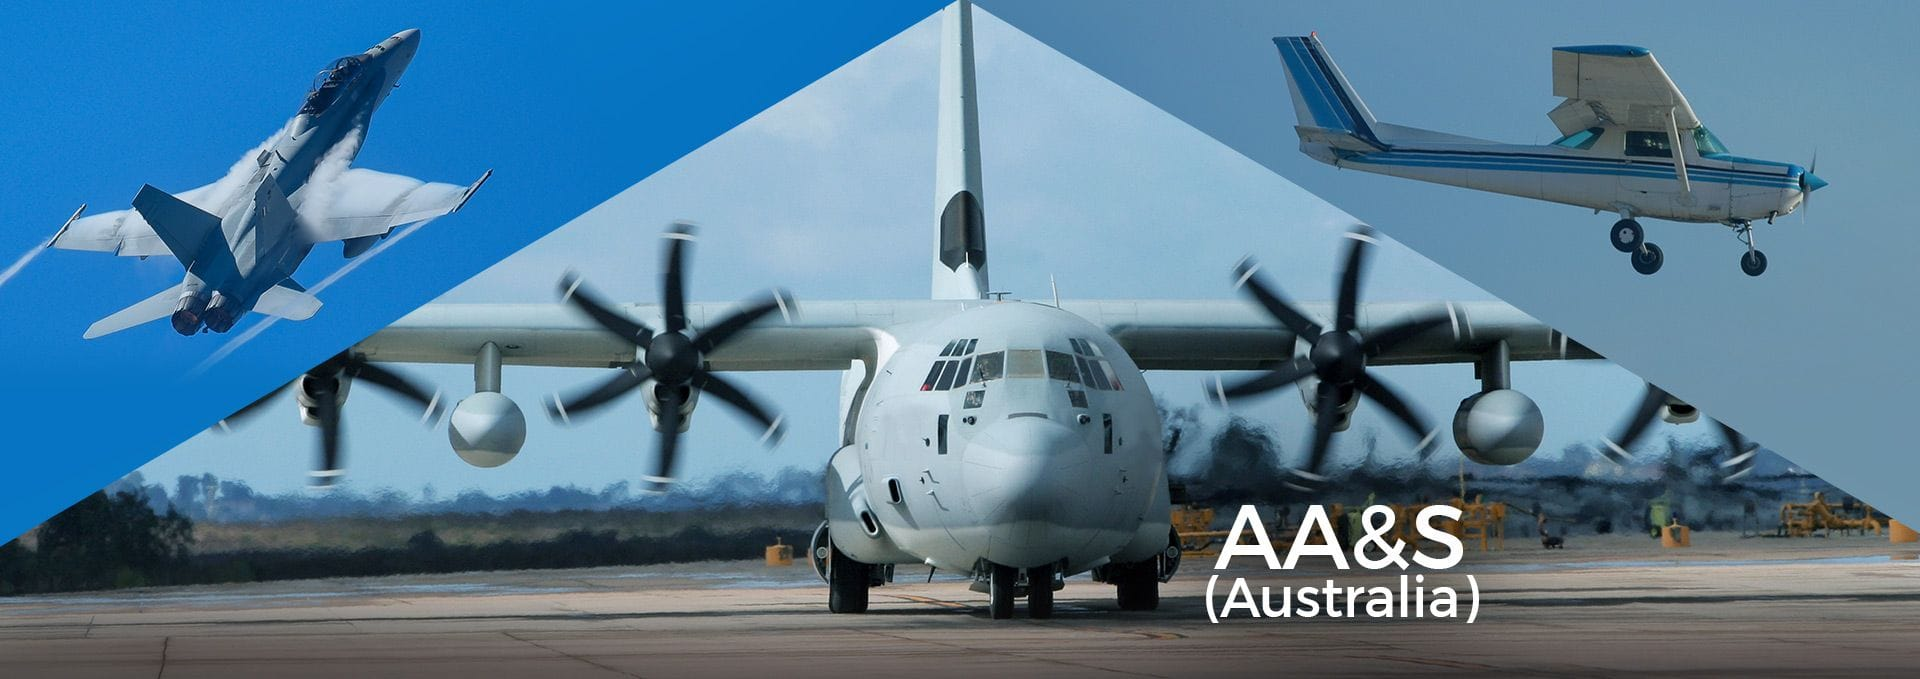 Aircraft Airworthiness & Sustainment Conference